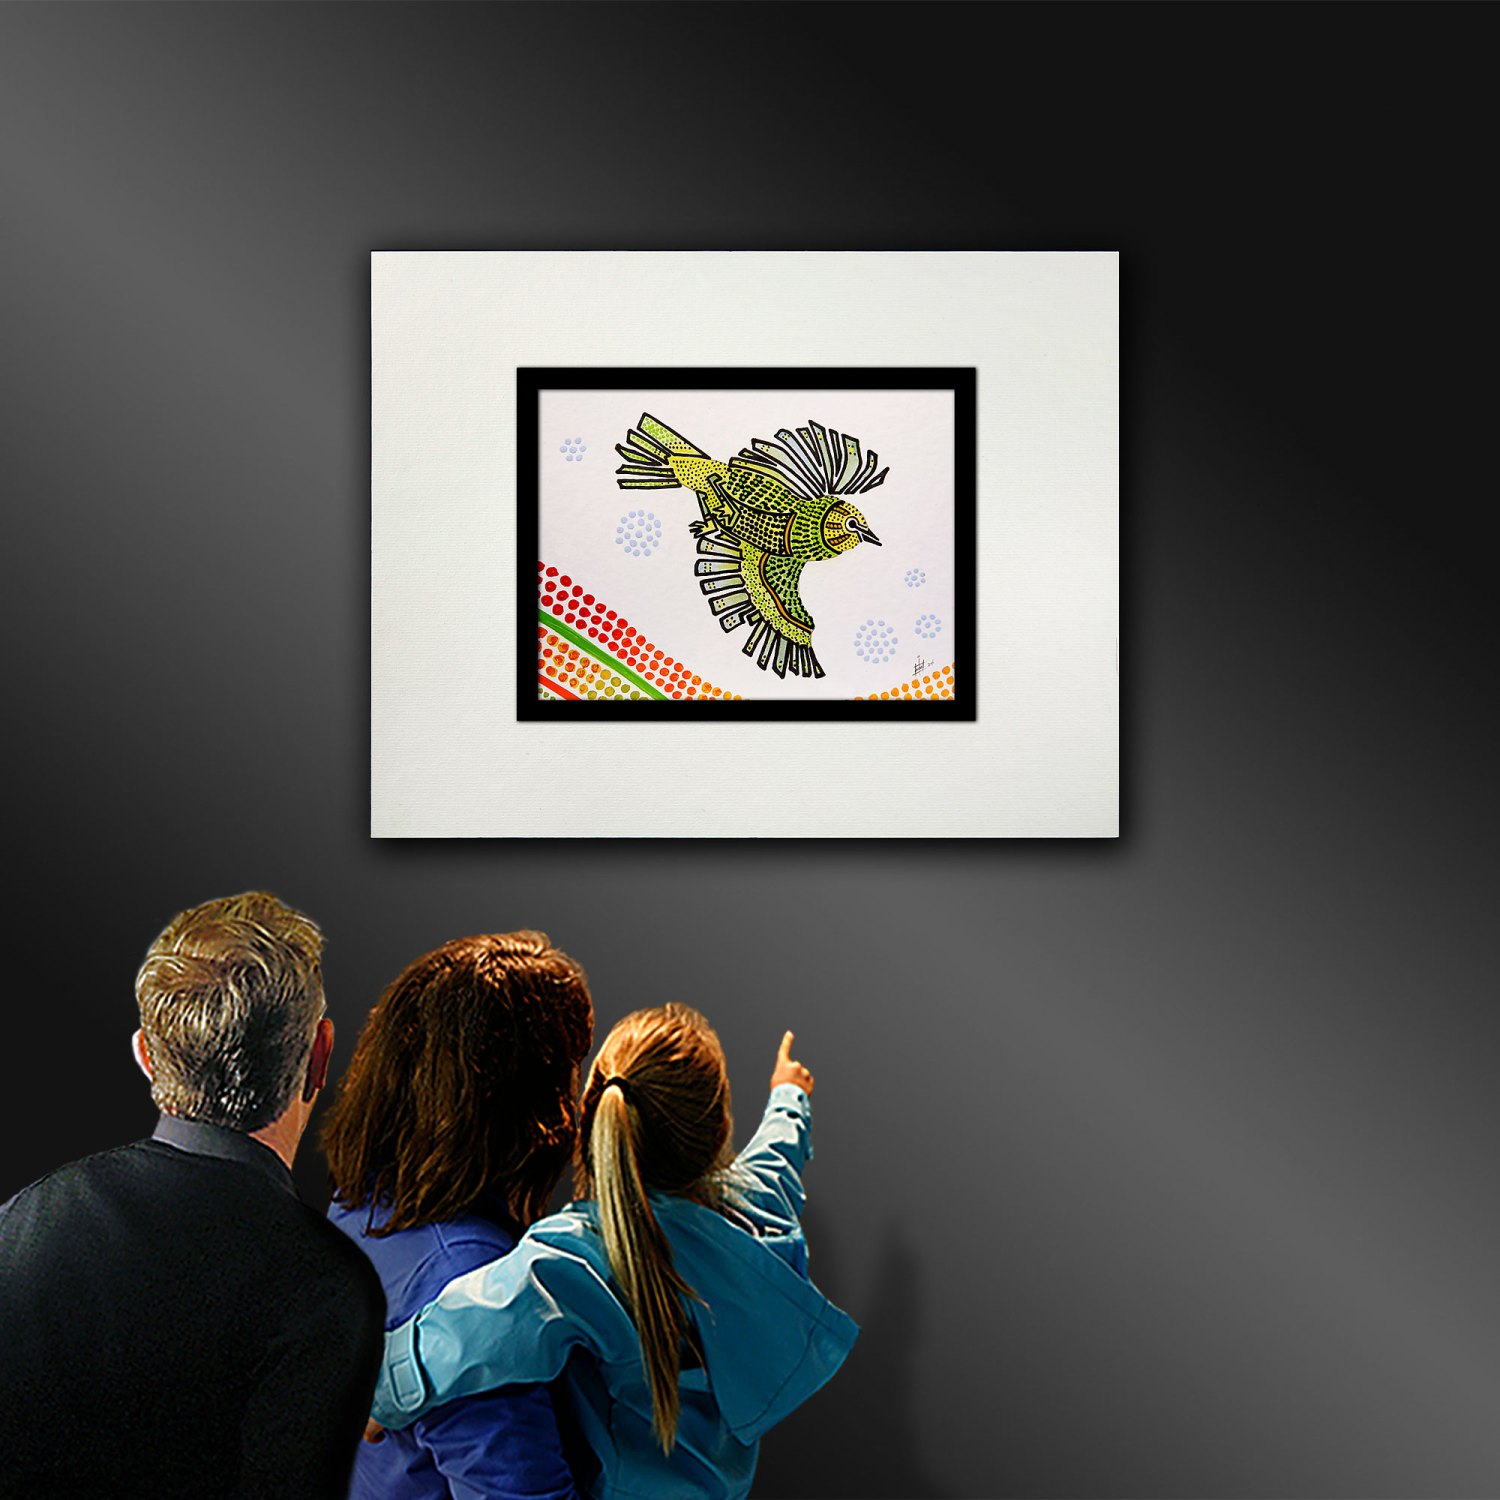 A colour illustration of a Silvereye bird in flight, being viewed in a gallery.